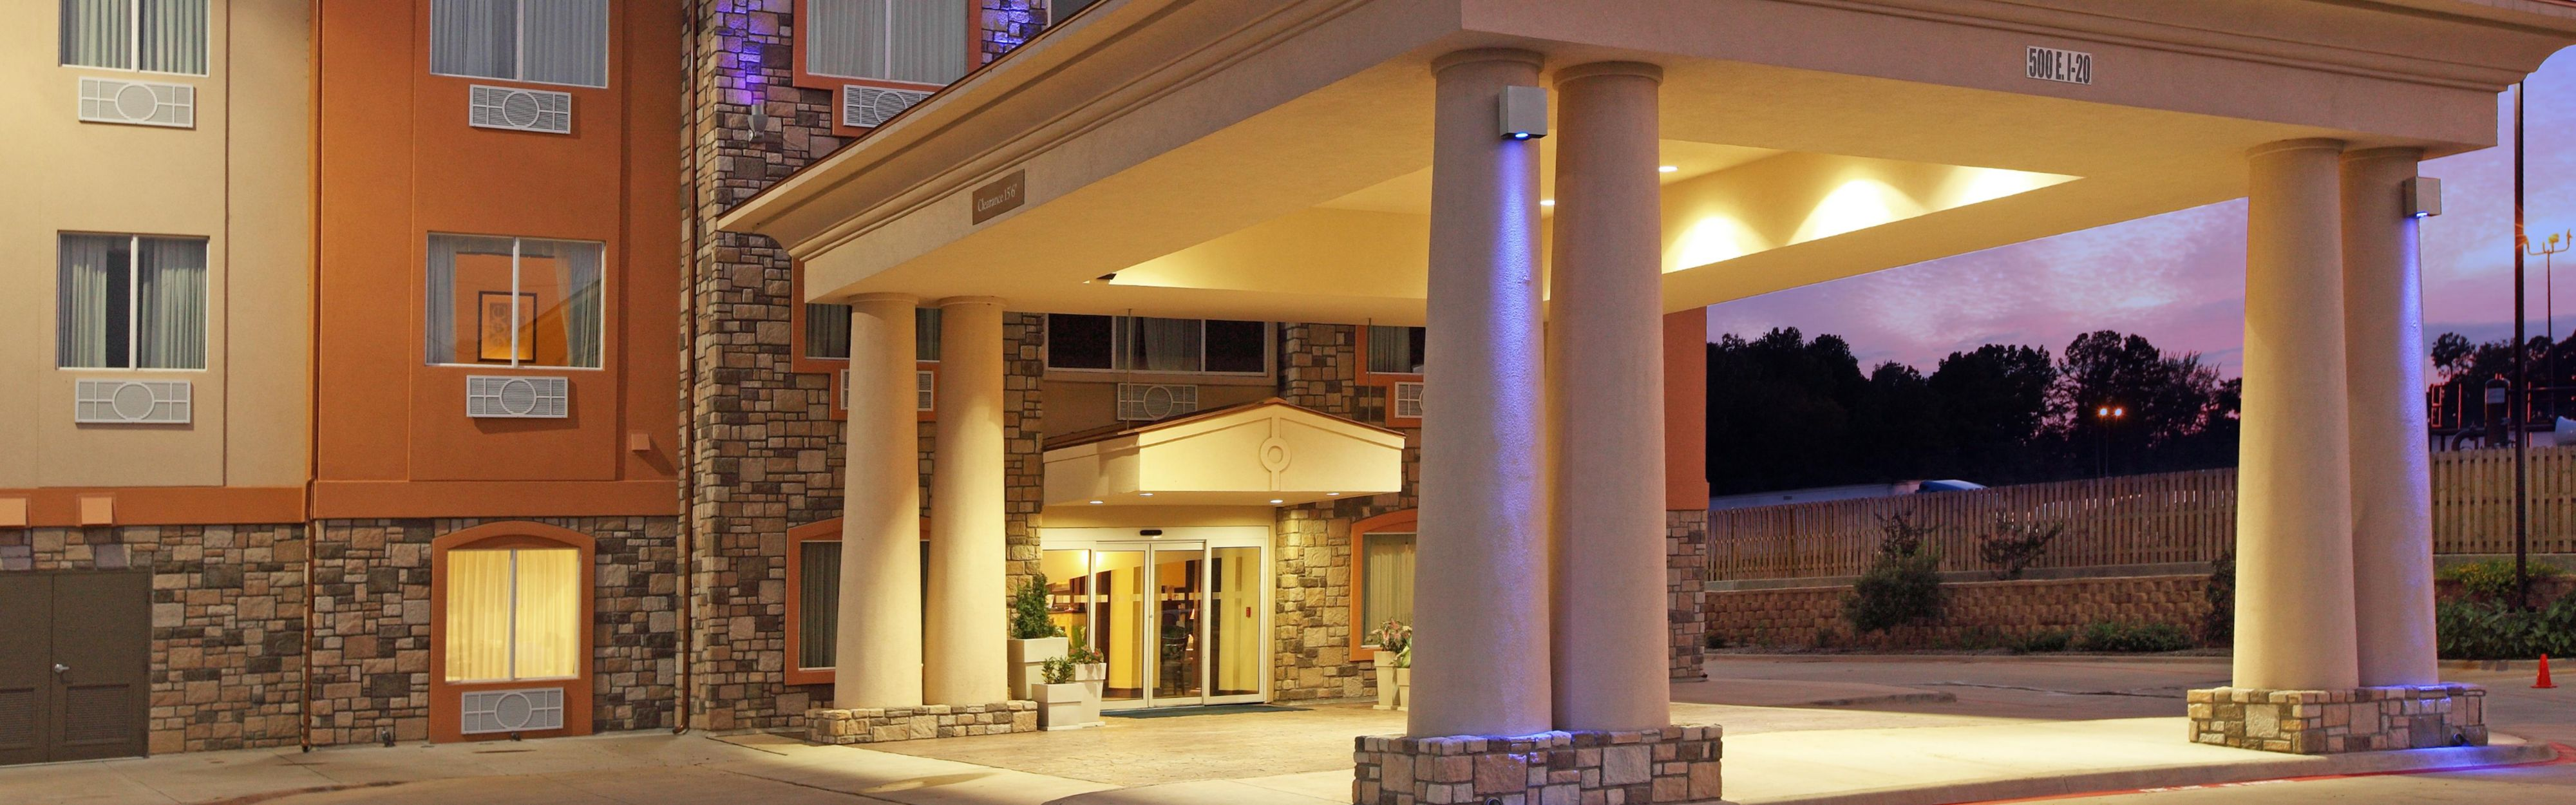 Holiday Inn Express & Suites Marshall image 0